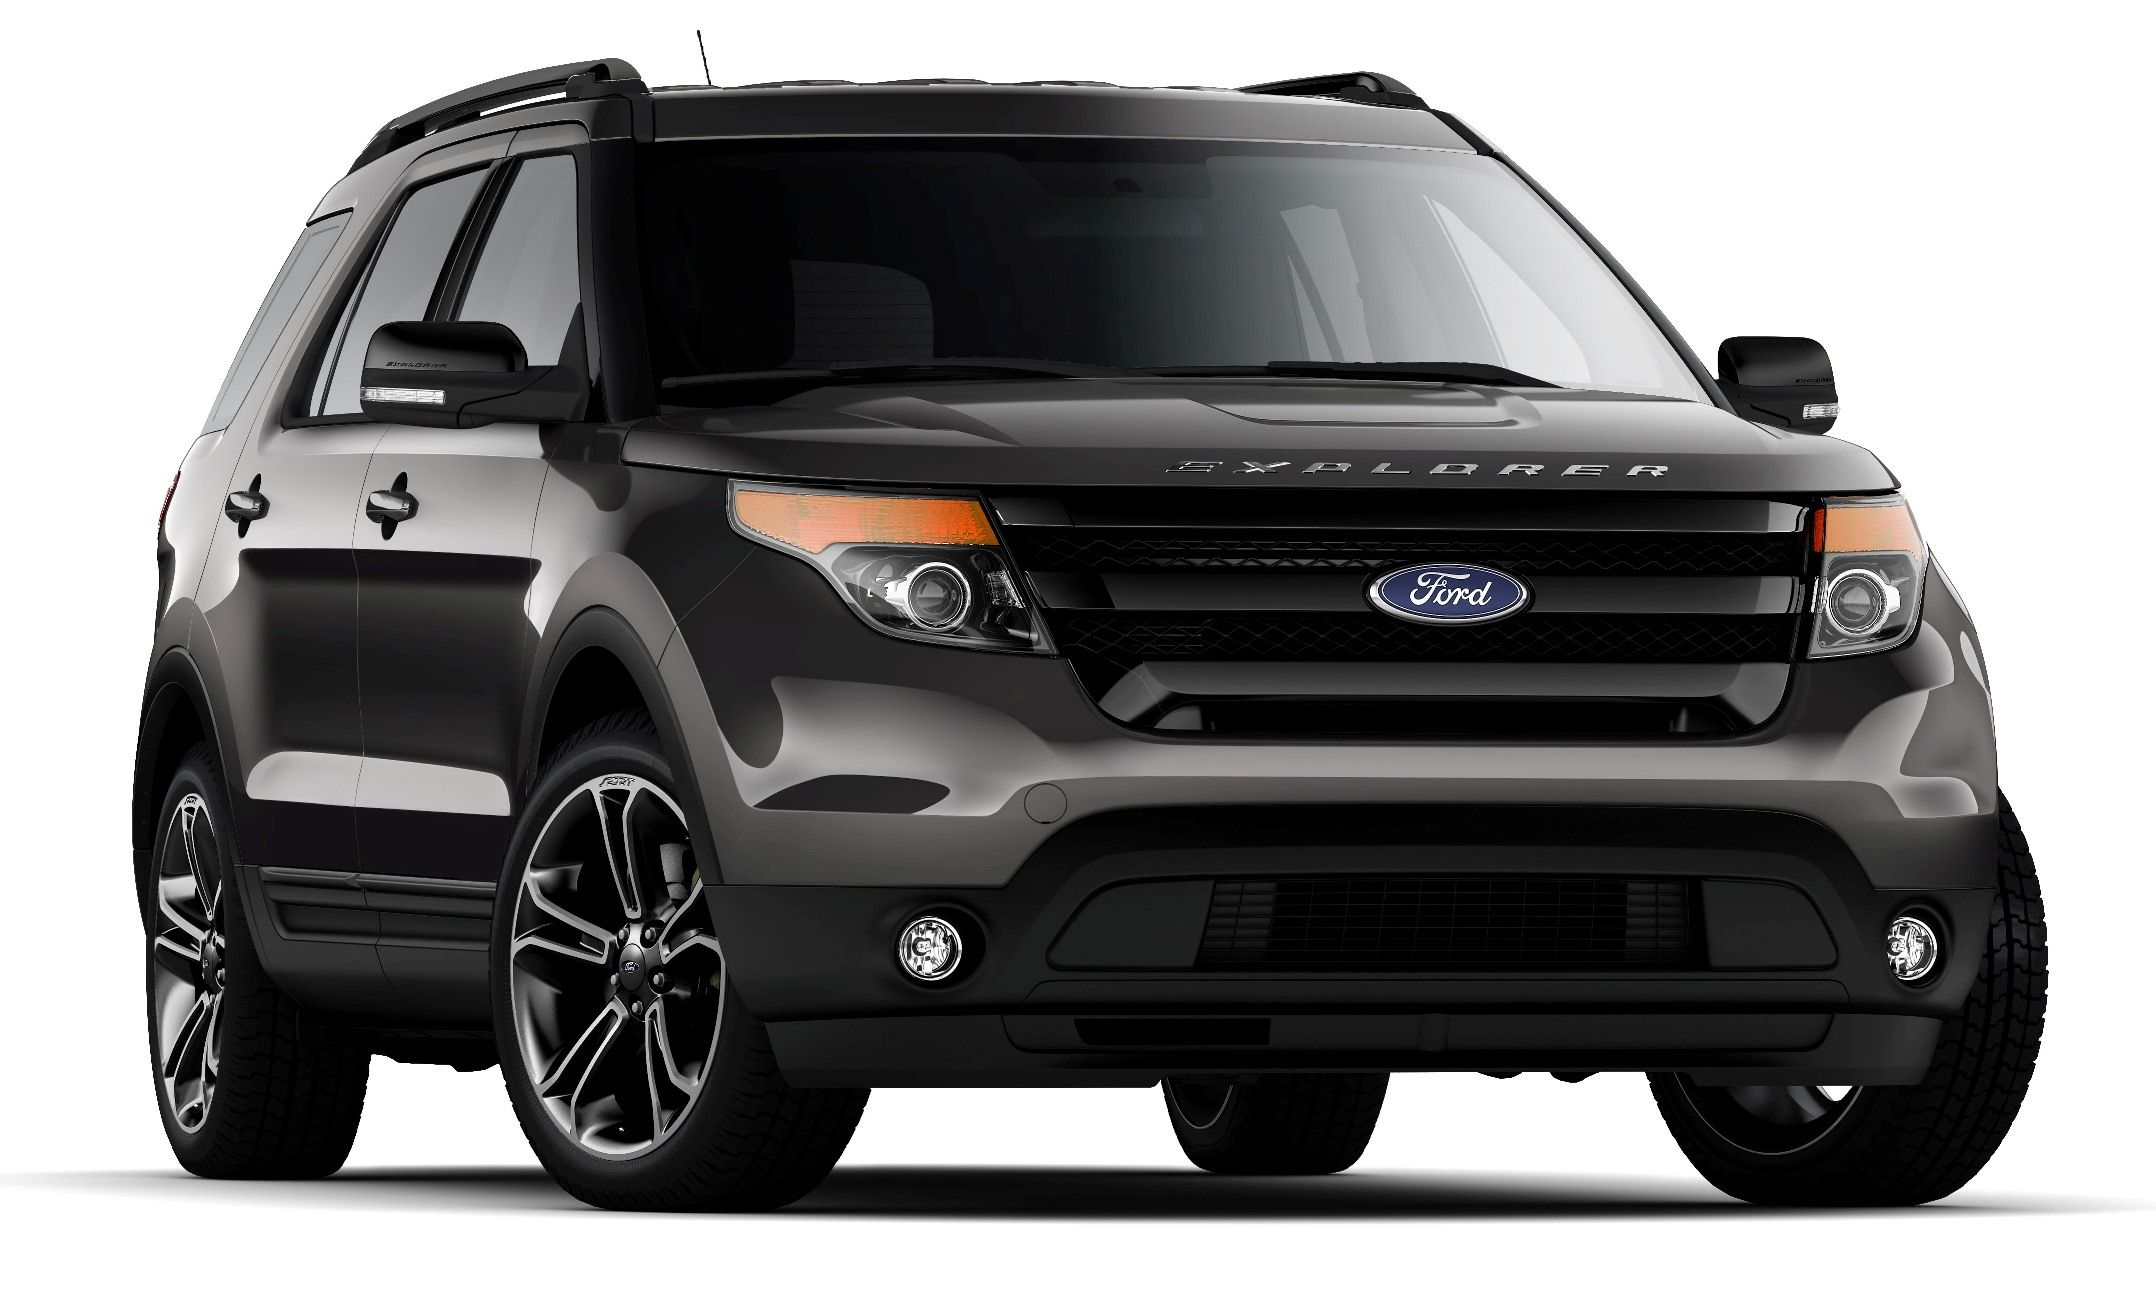 2015 Ford Explorer Black Wallpaper http//carwallspaper